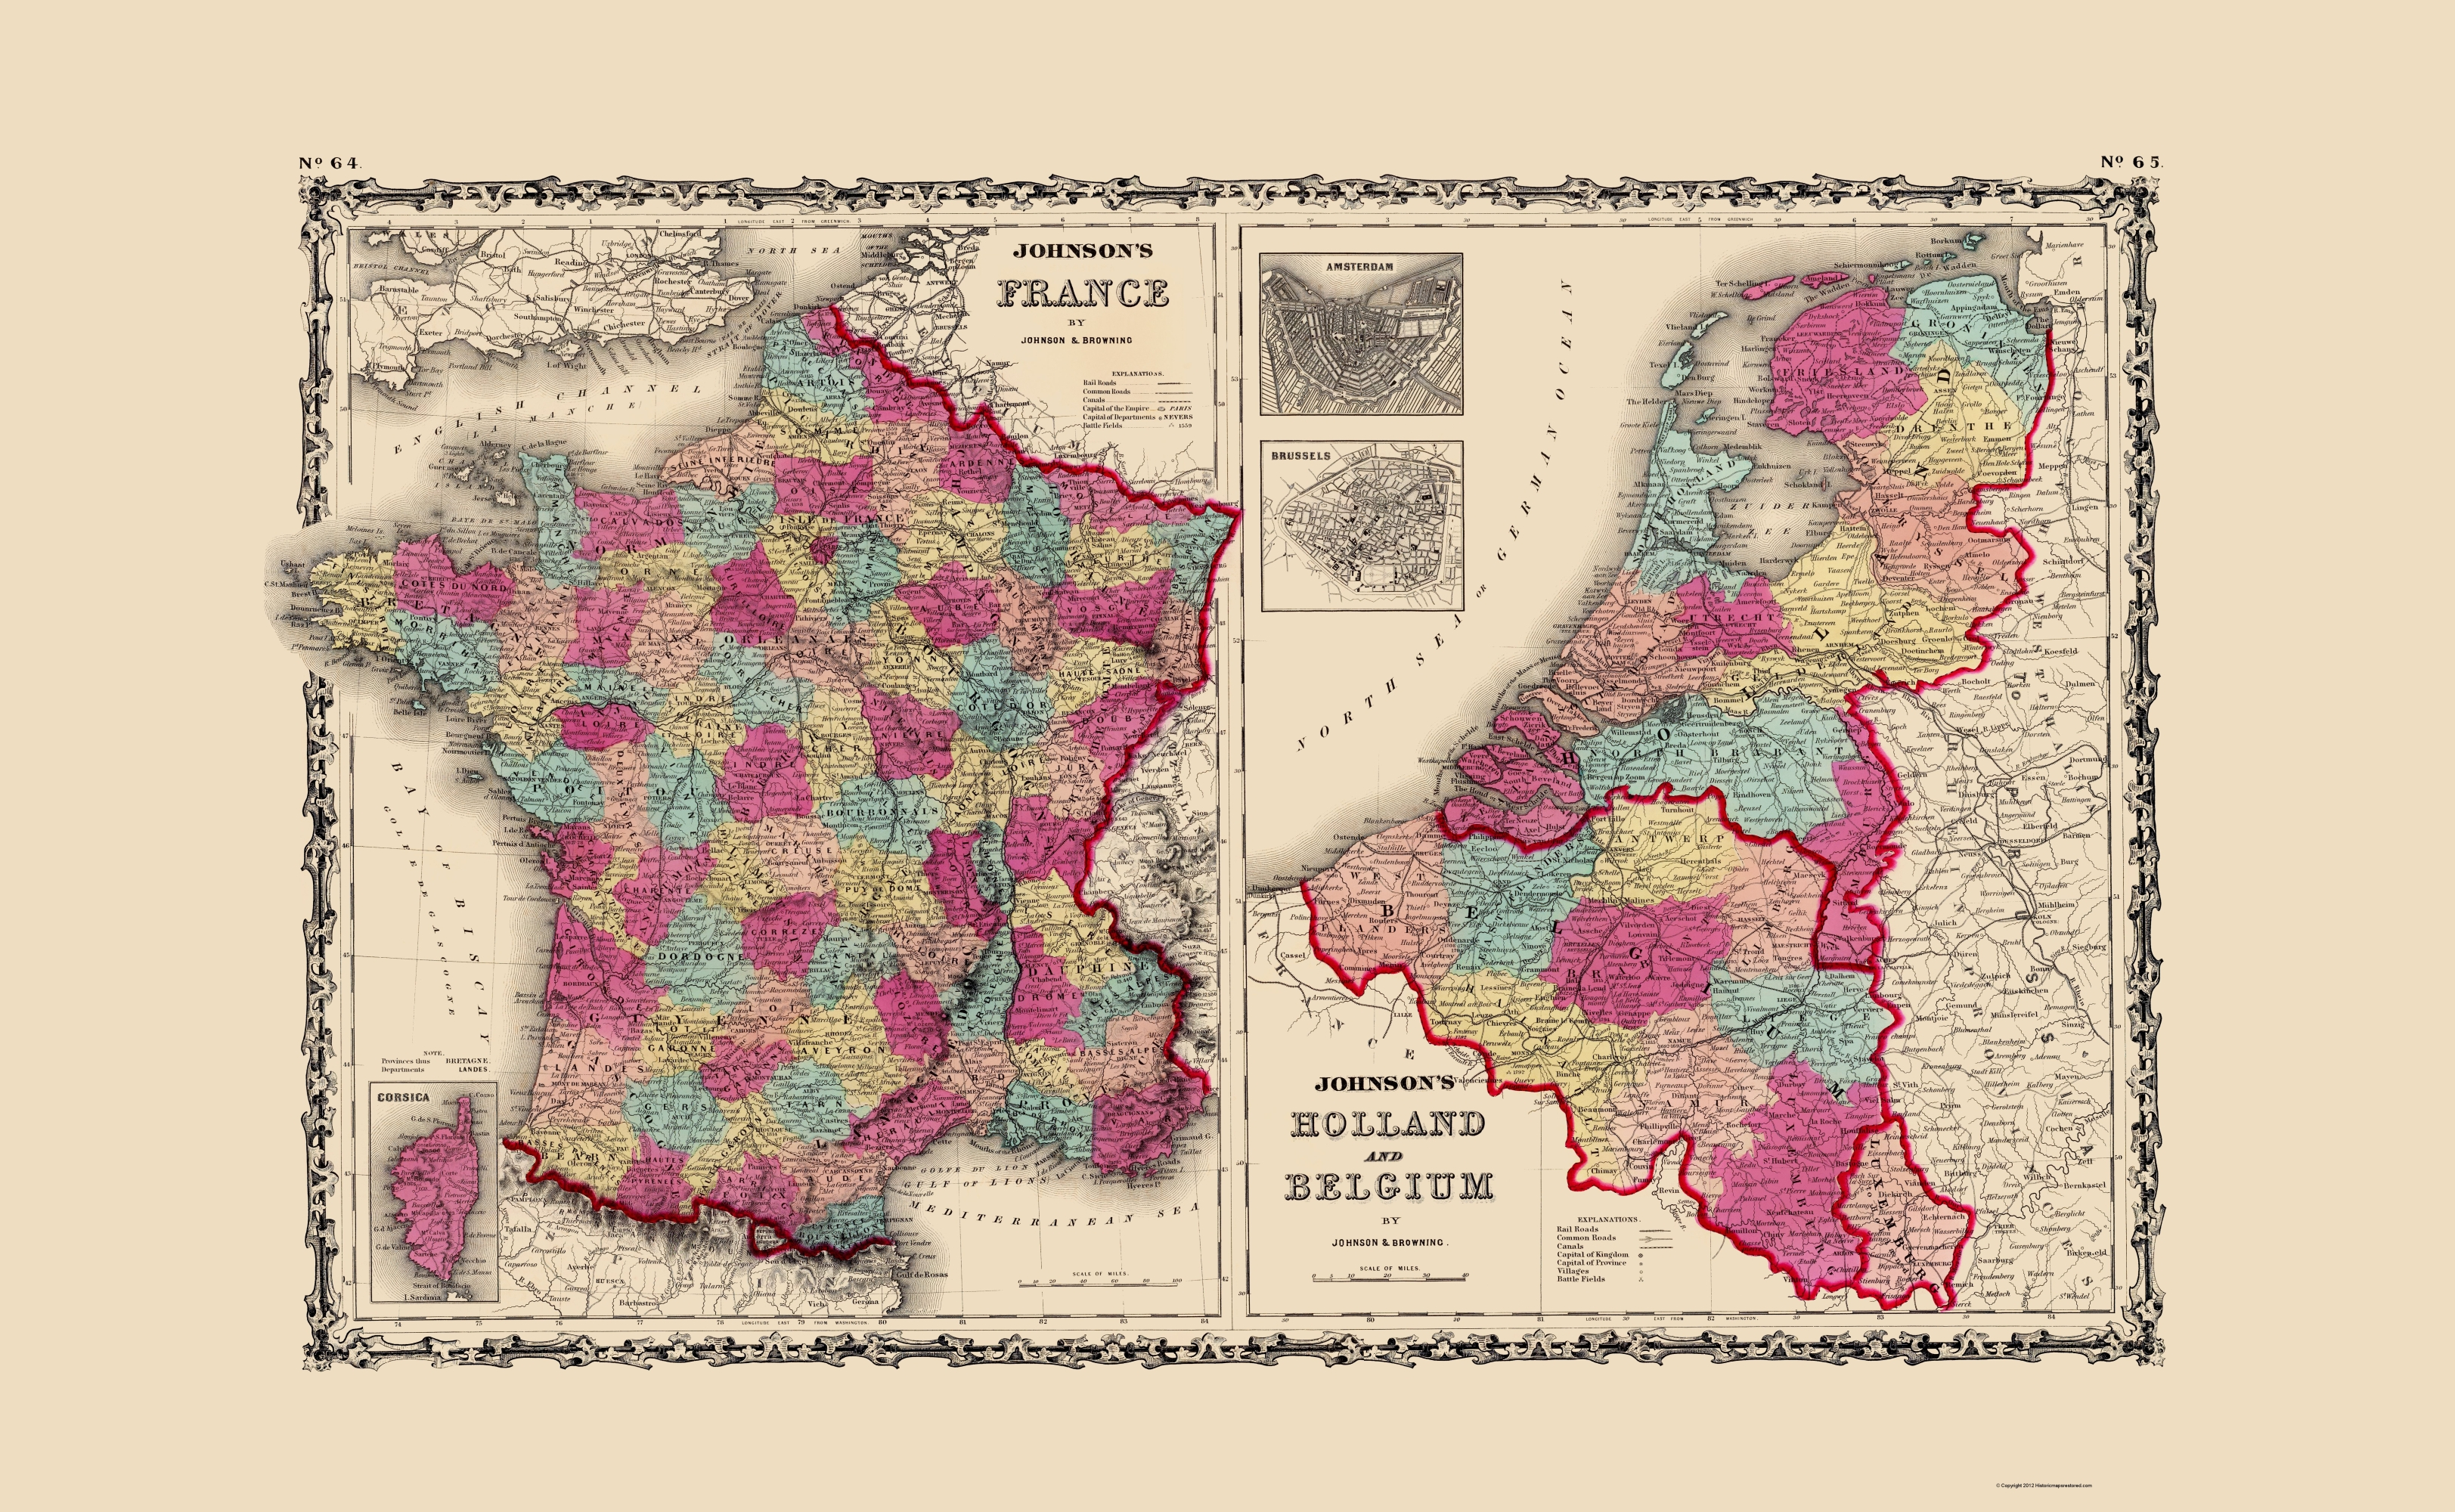 Map Of France And Holland Belgium.Old Europe Map France Holland Belgium Johnson 1860